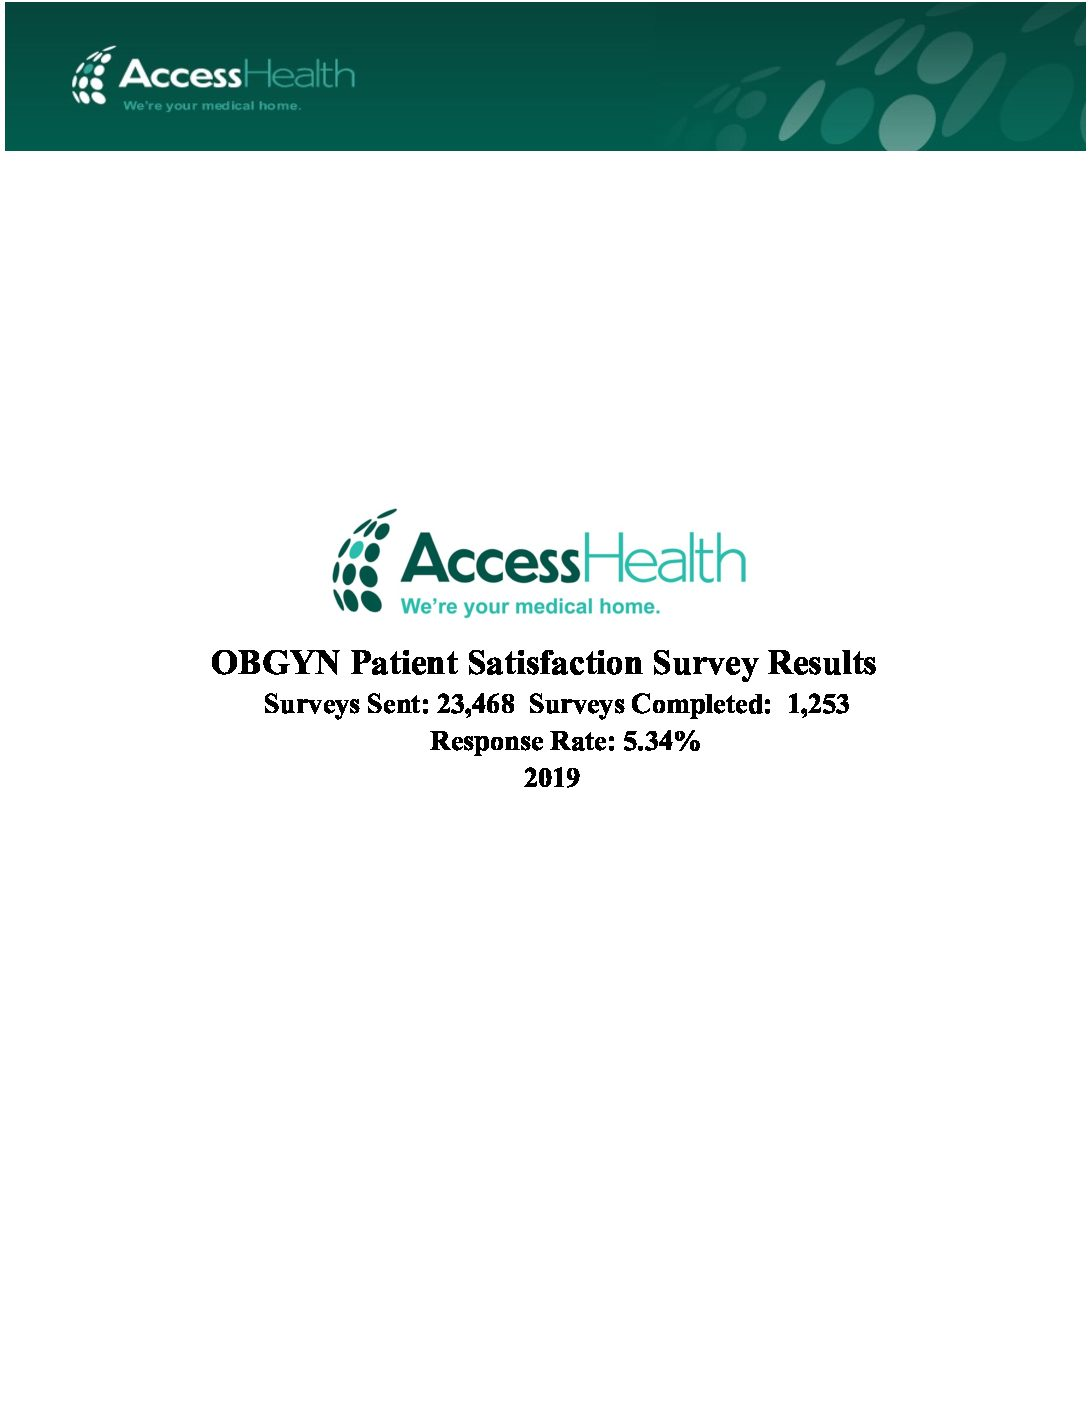 2019 OBGYN Patient Satisfaction Survey Results